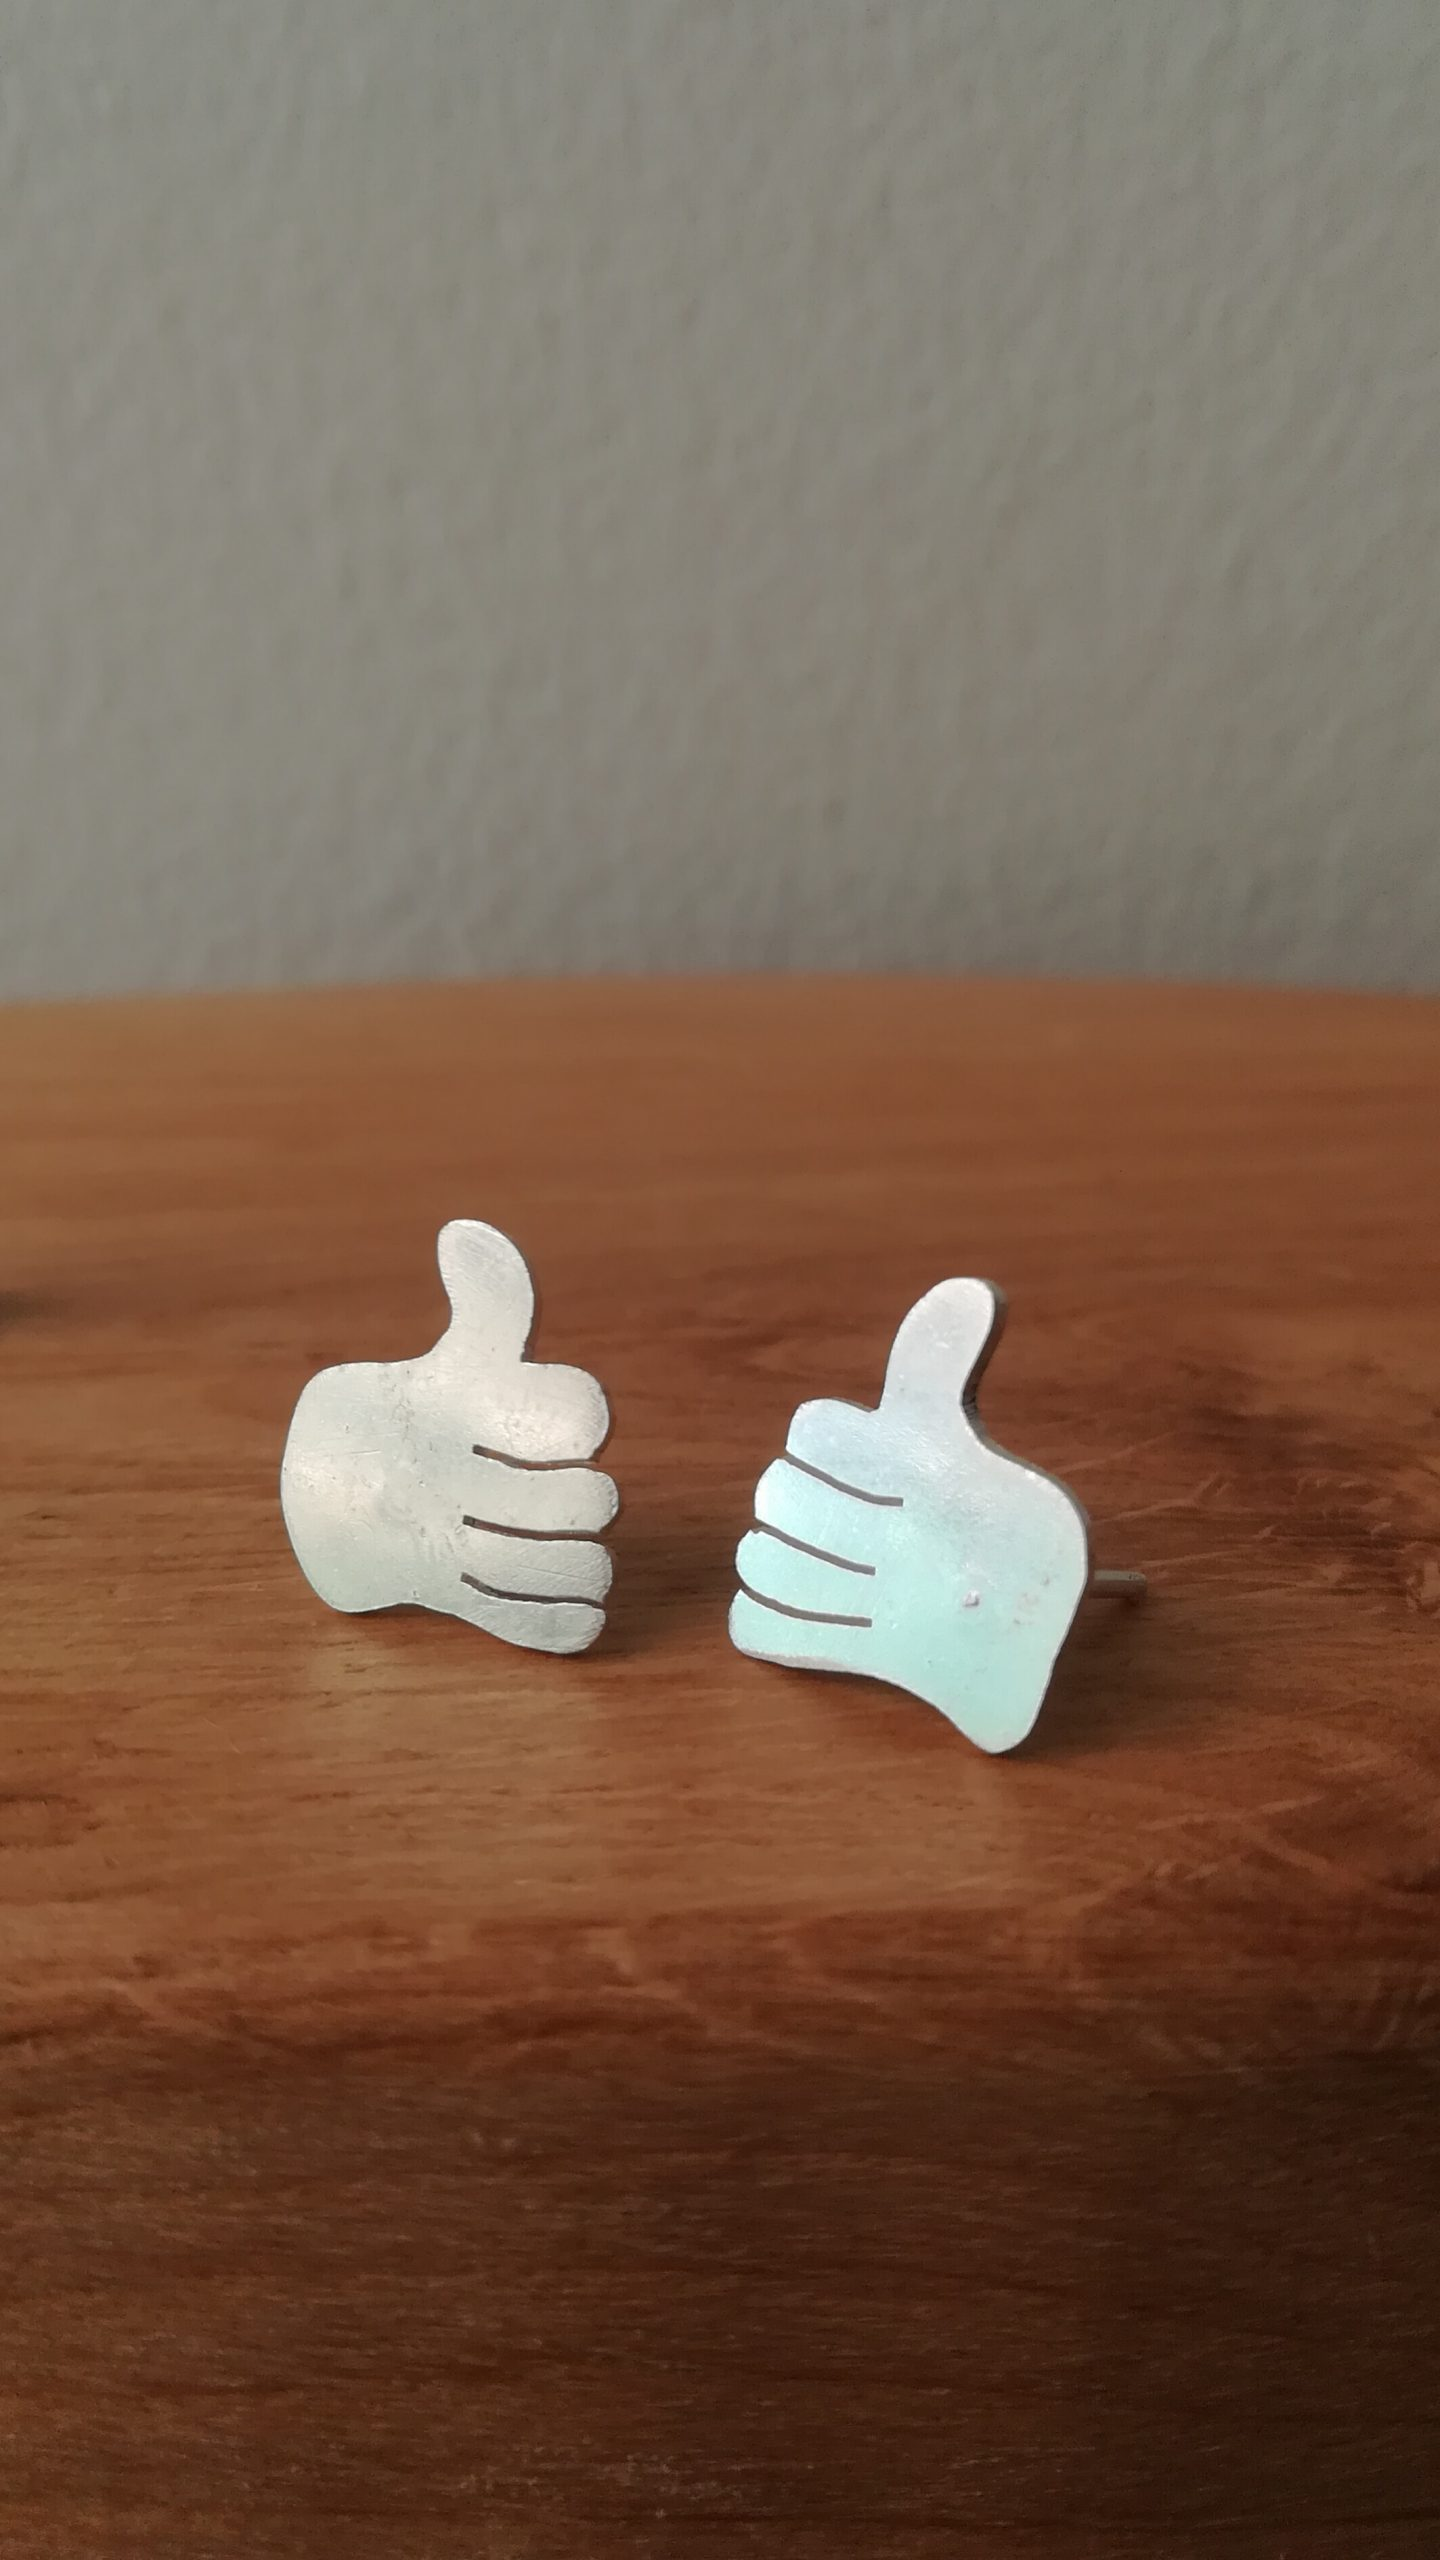 Thumbs Up Studs Abigail J Marsh